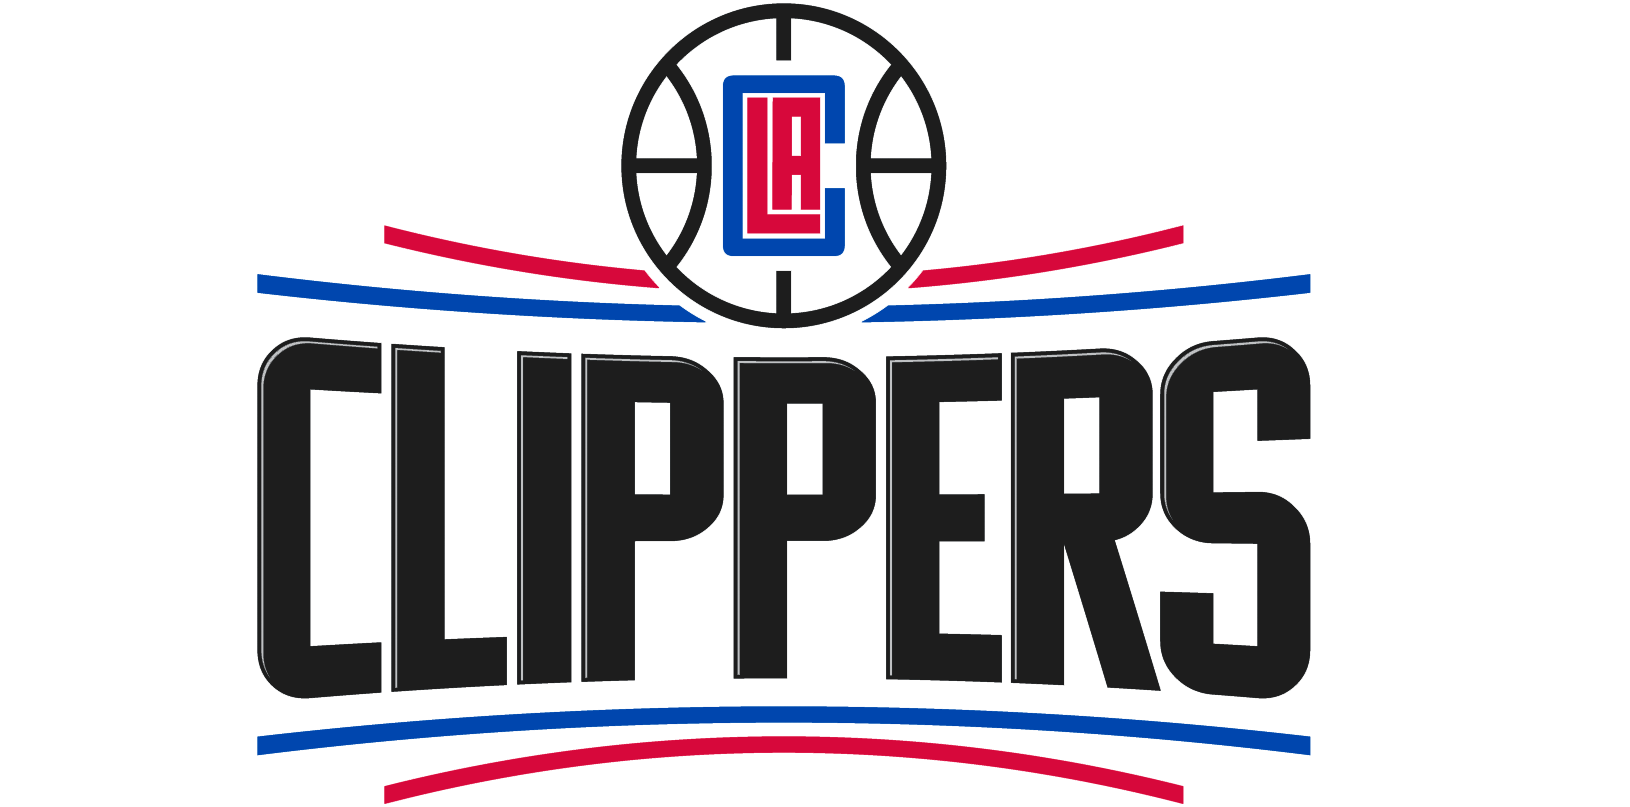 L.A. Clippers - Primary logo